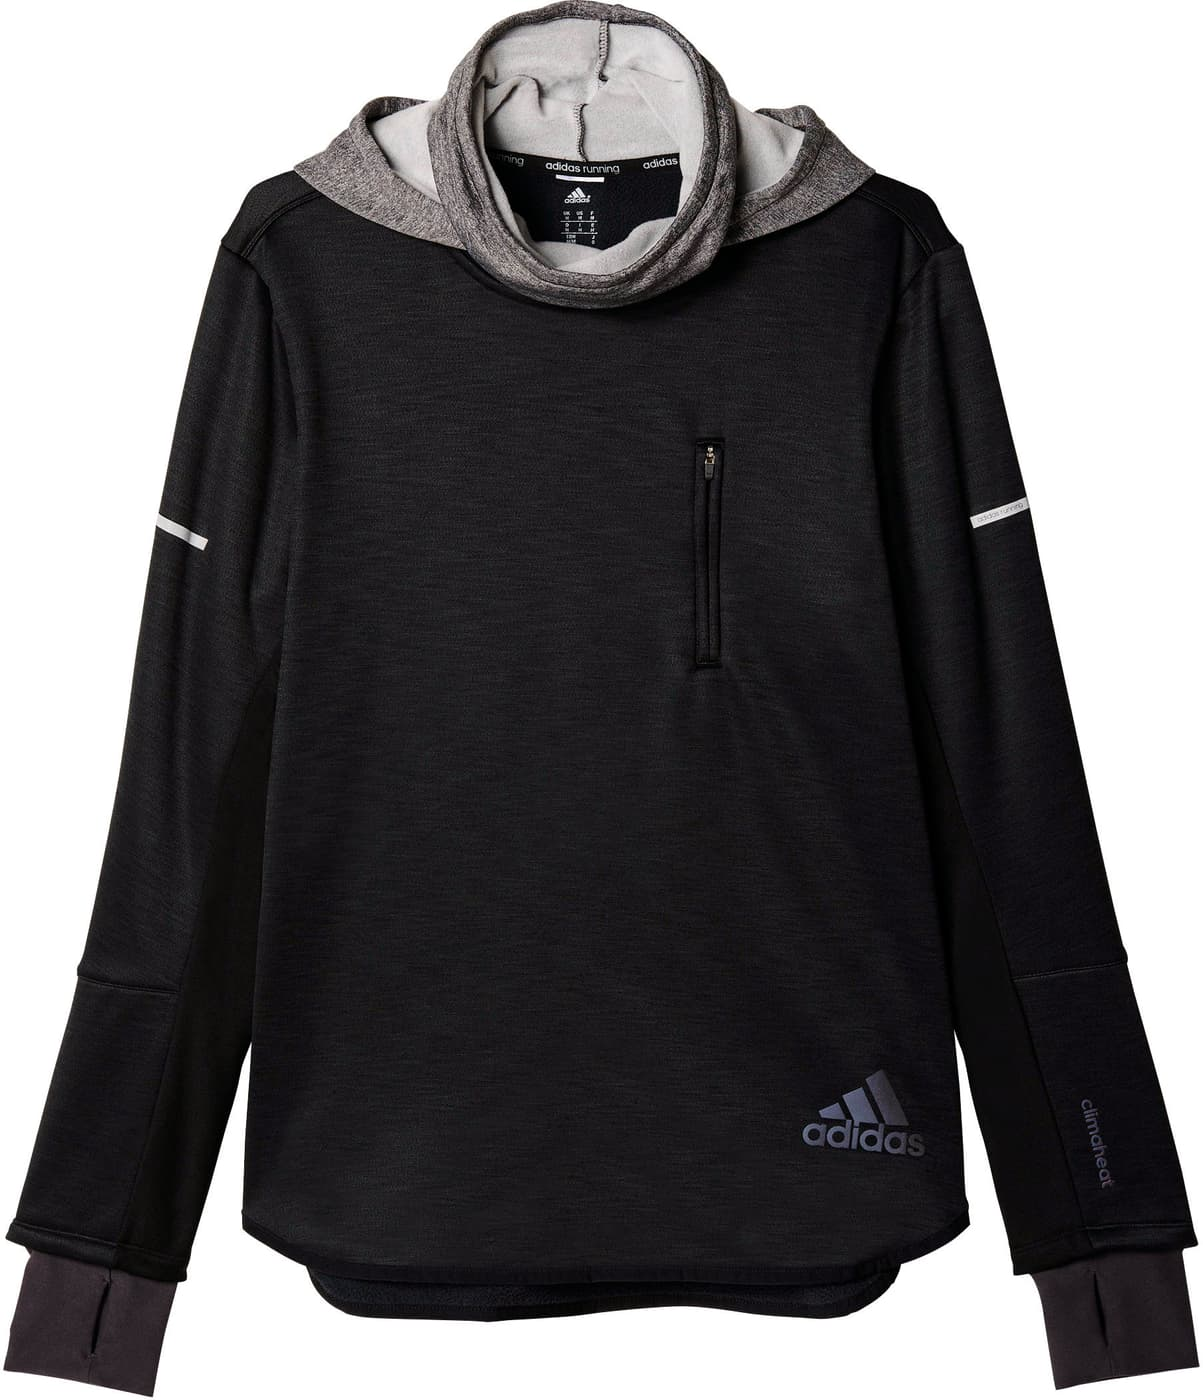 adidas herren running kapuzenpullover sequencials ch hoody m migros. Black Bedroom Furniture Sets. Home Design Ideas